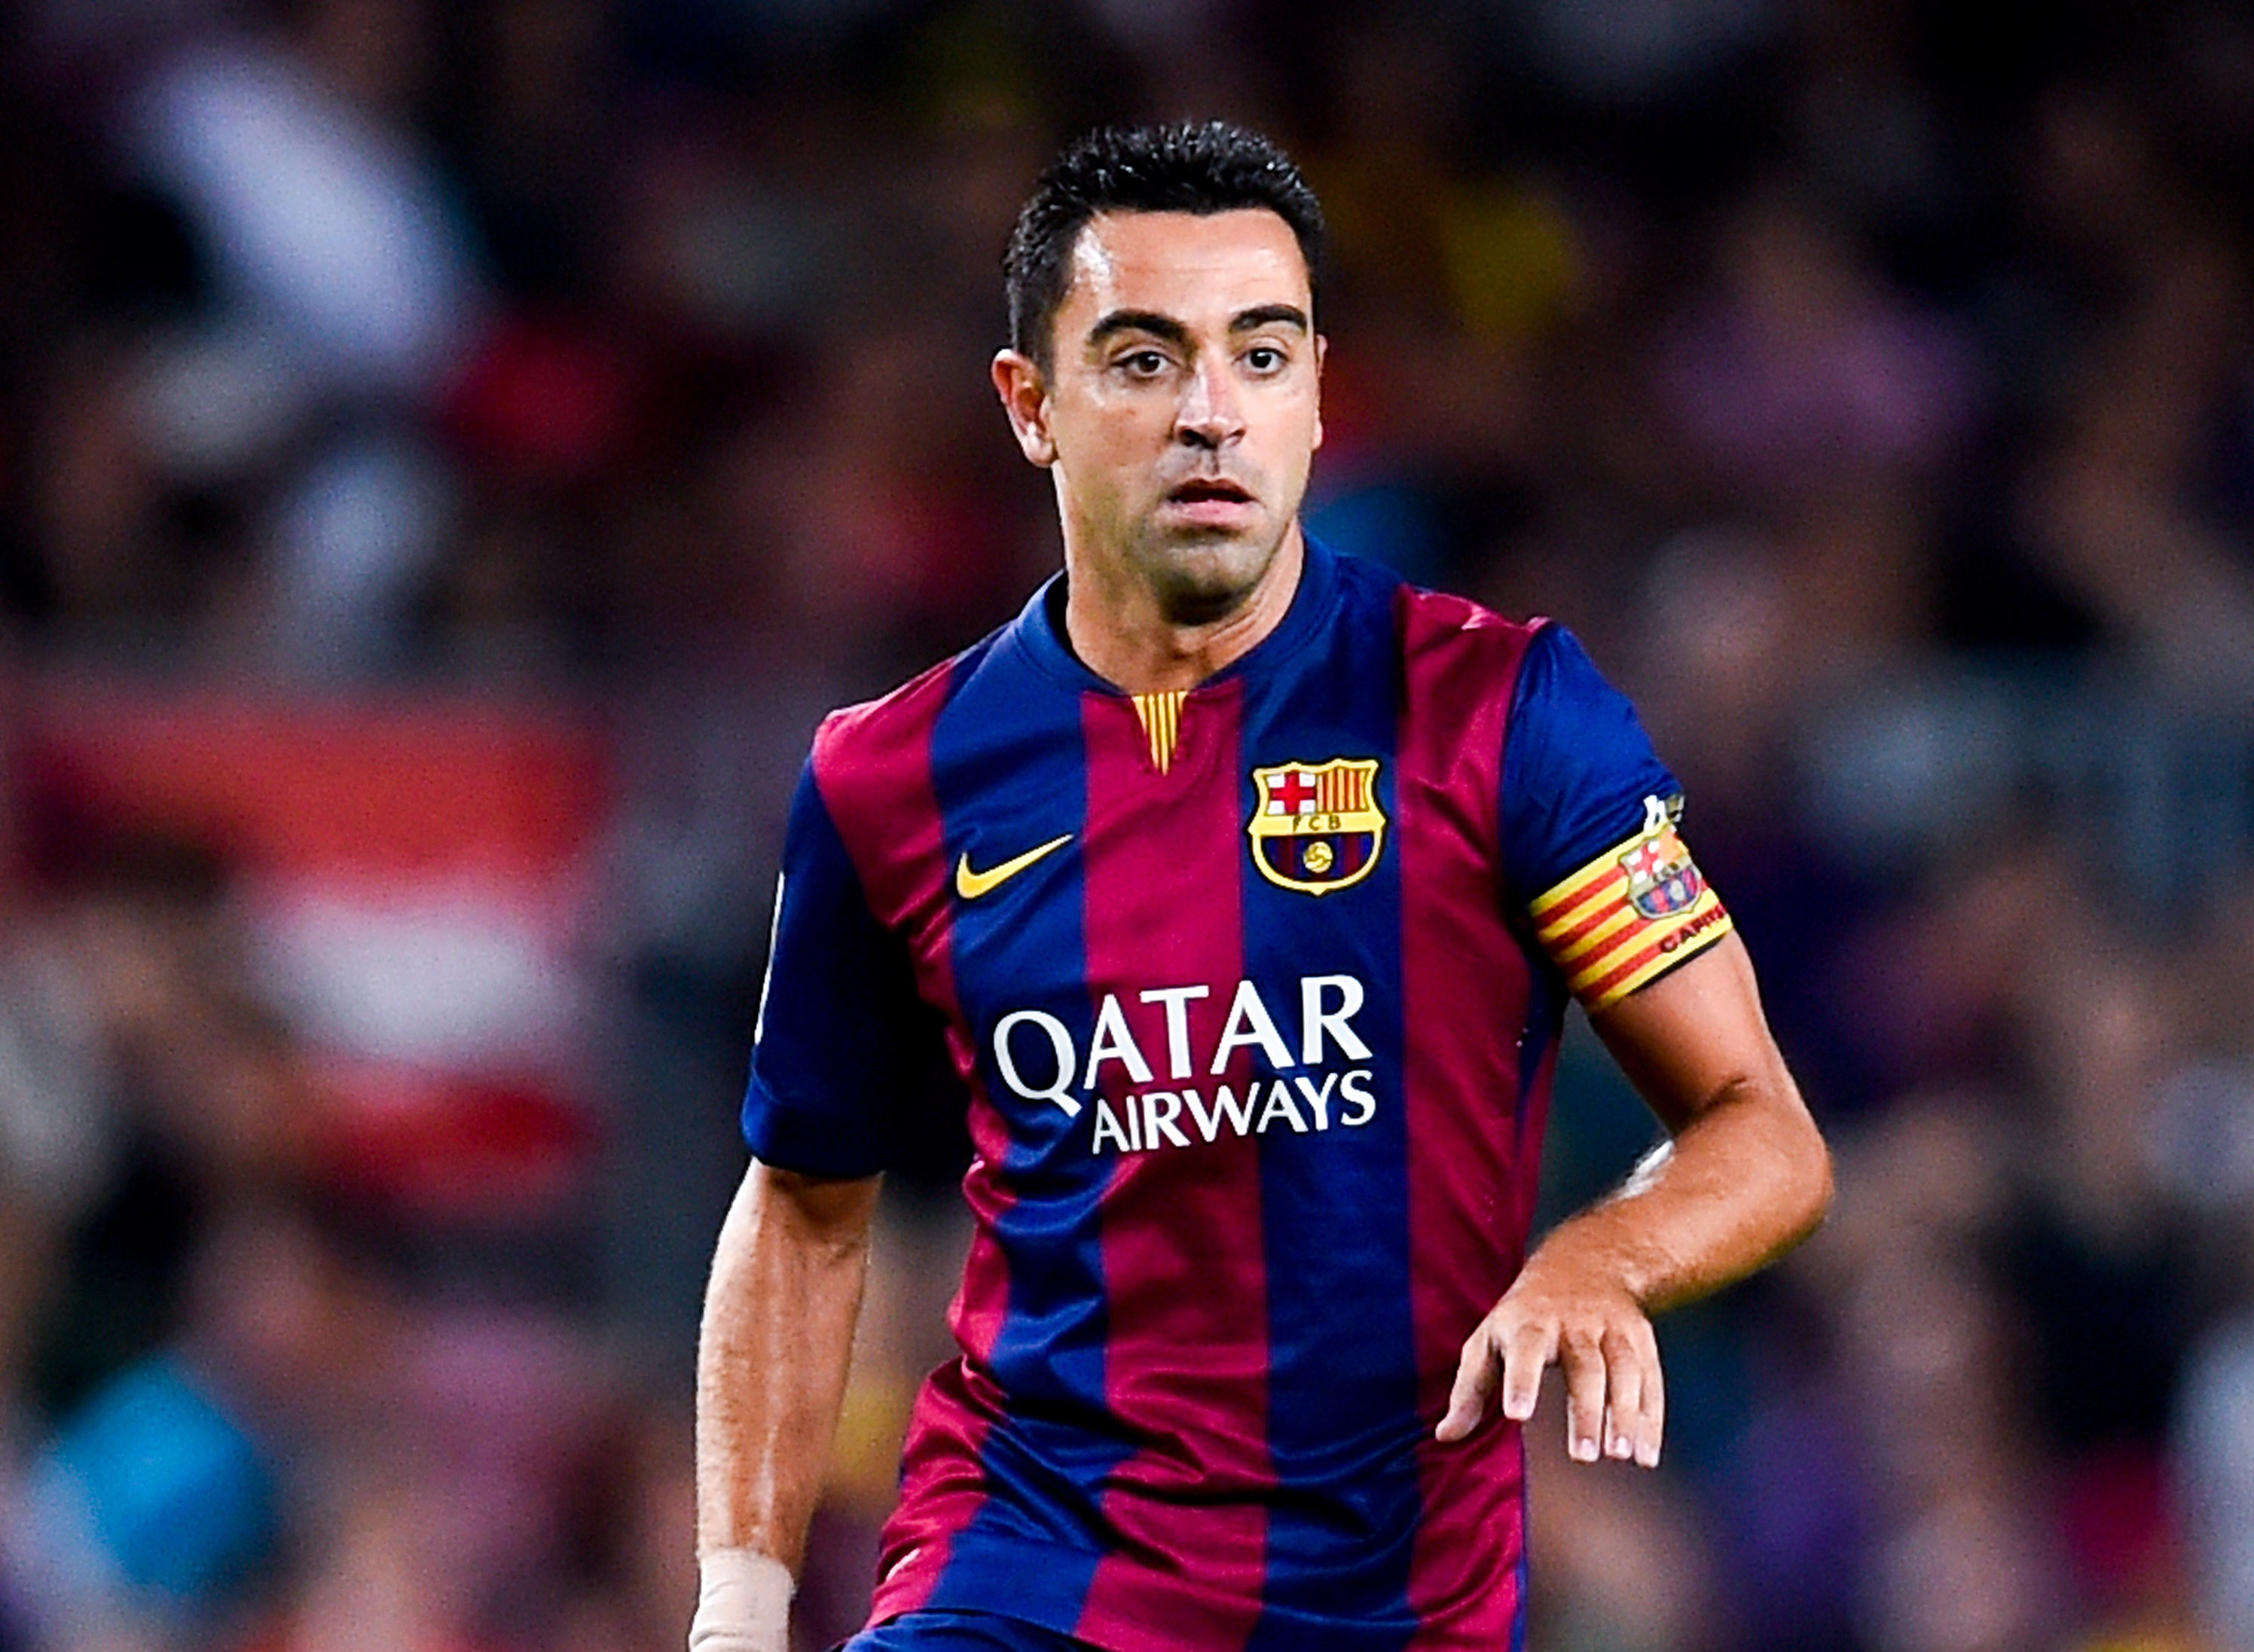 Barcelona and Spain legend Xavi emerges as shock supporter of… Sheffield United